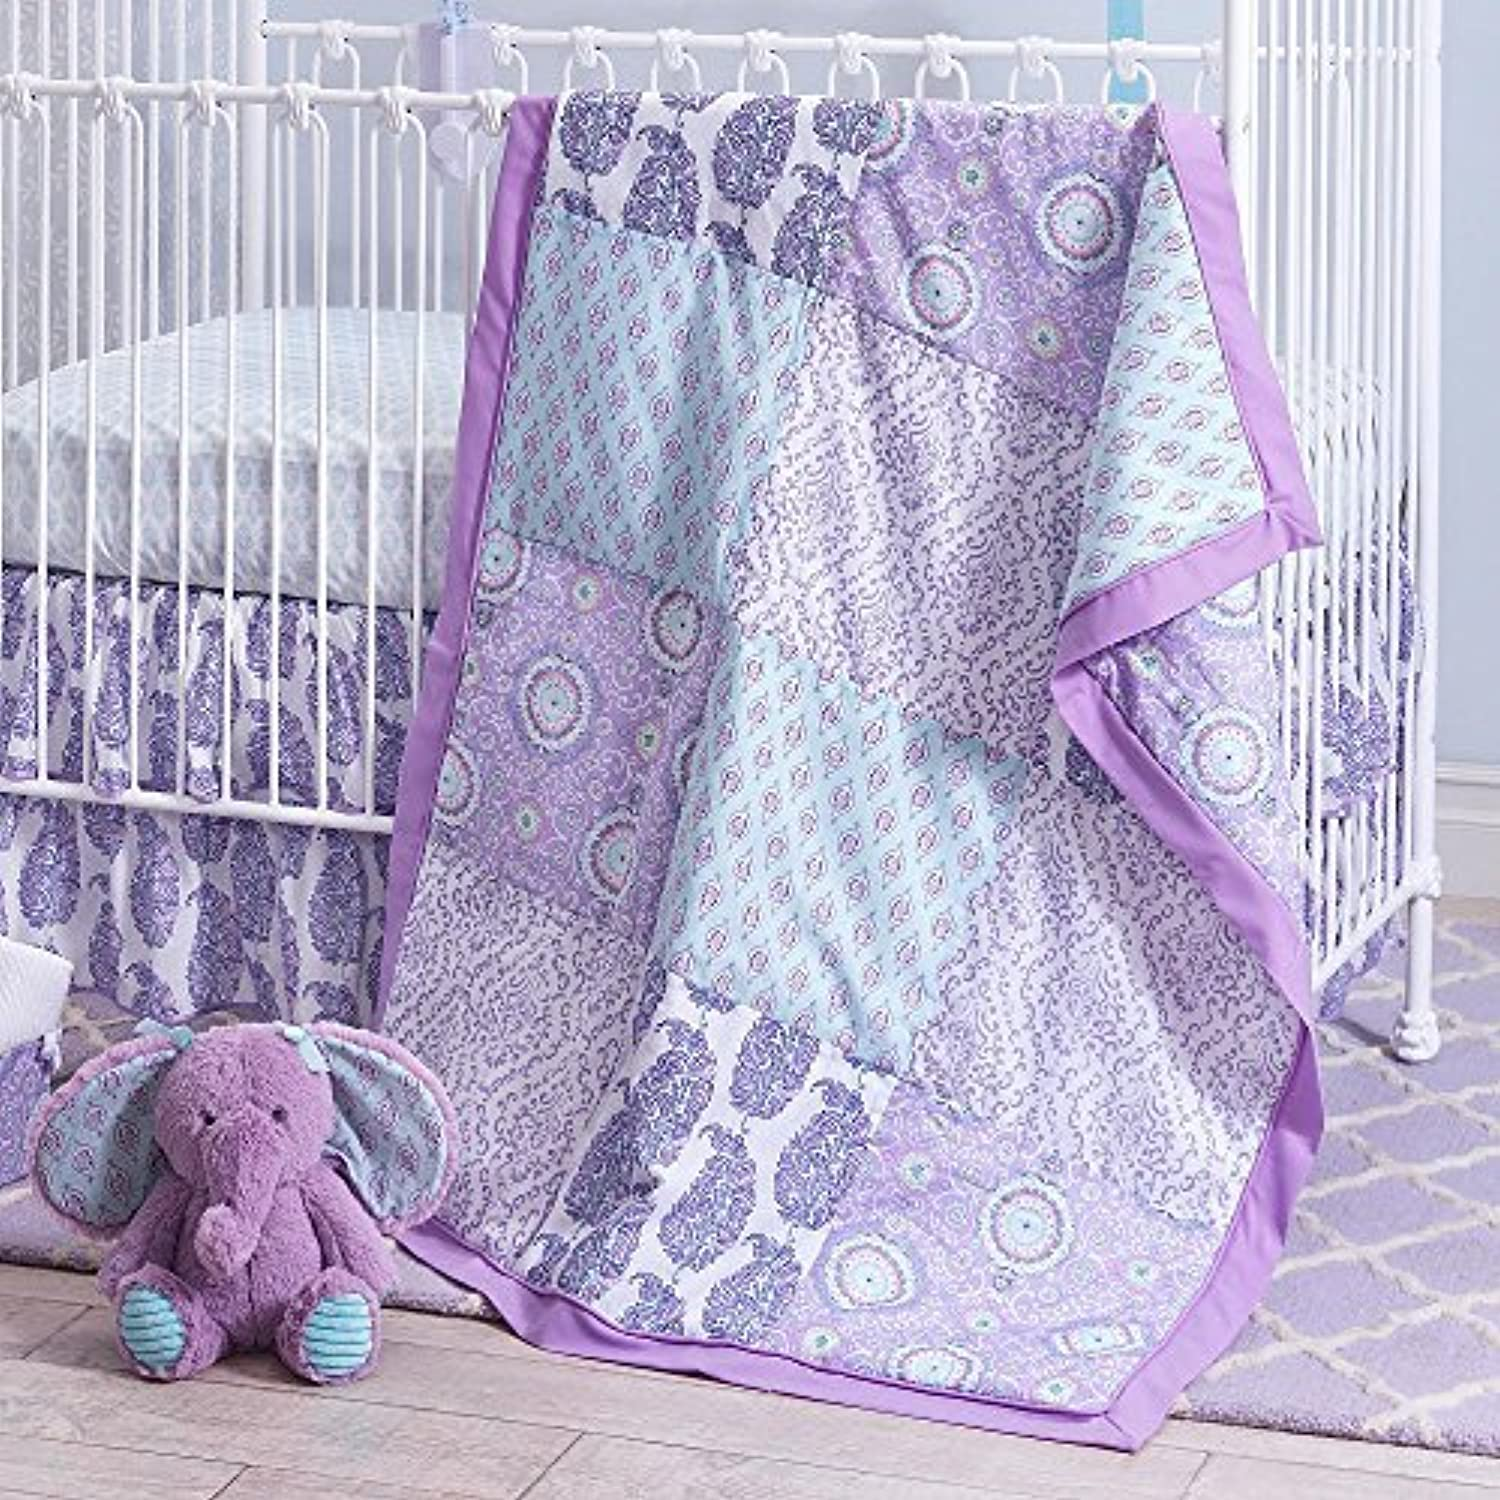 Olivia 4 Piece Baby Crib Bedding Sets [並行輸入品]